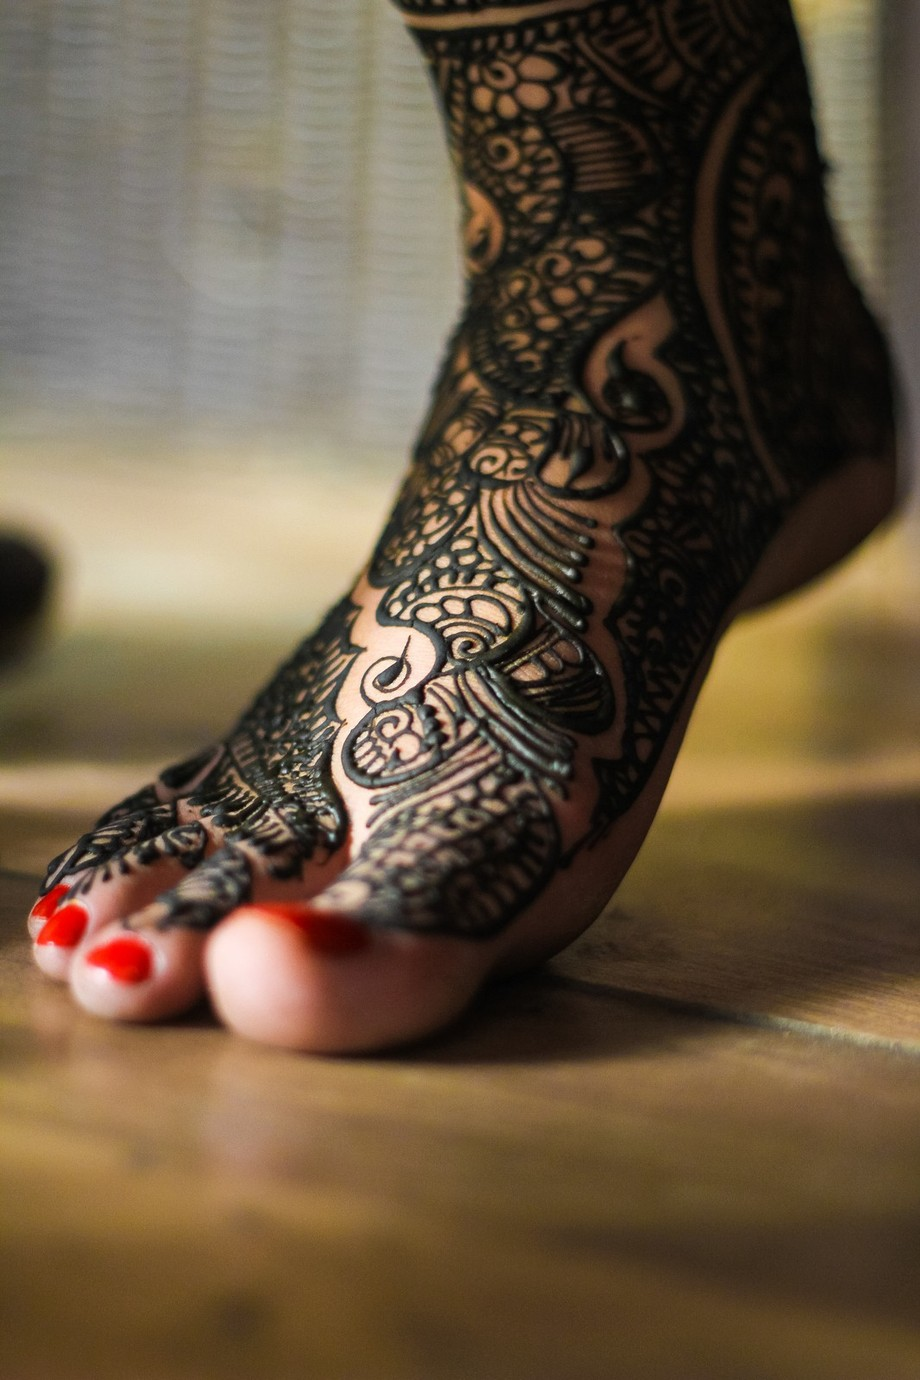 Shine sign by UditChetal91 - 500 Tattoos Photo Contest